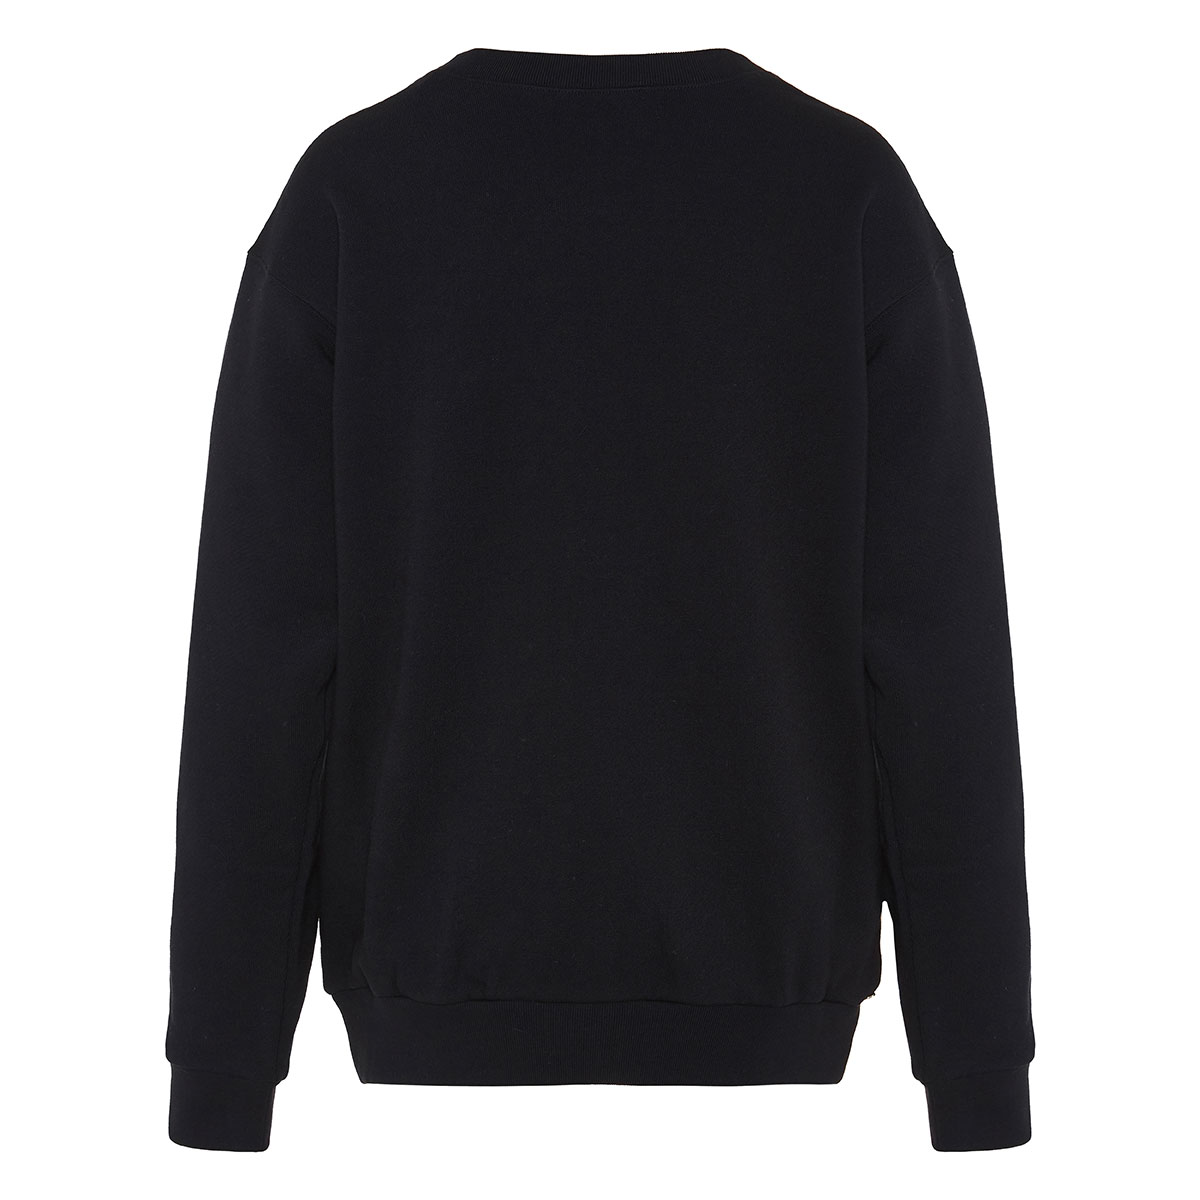 Gucci Orgasmique oversized cotton sweatshirt